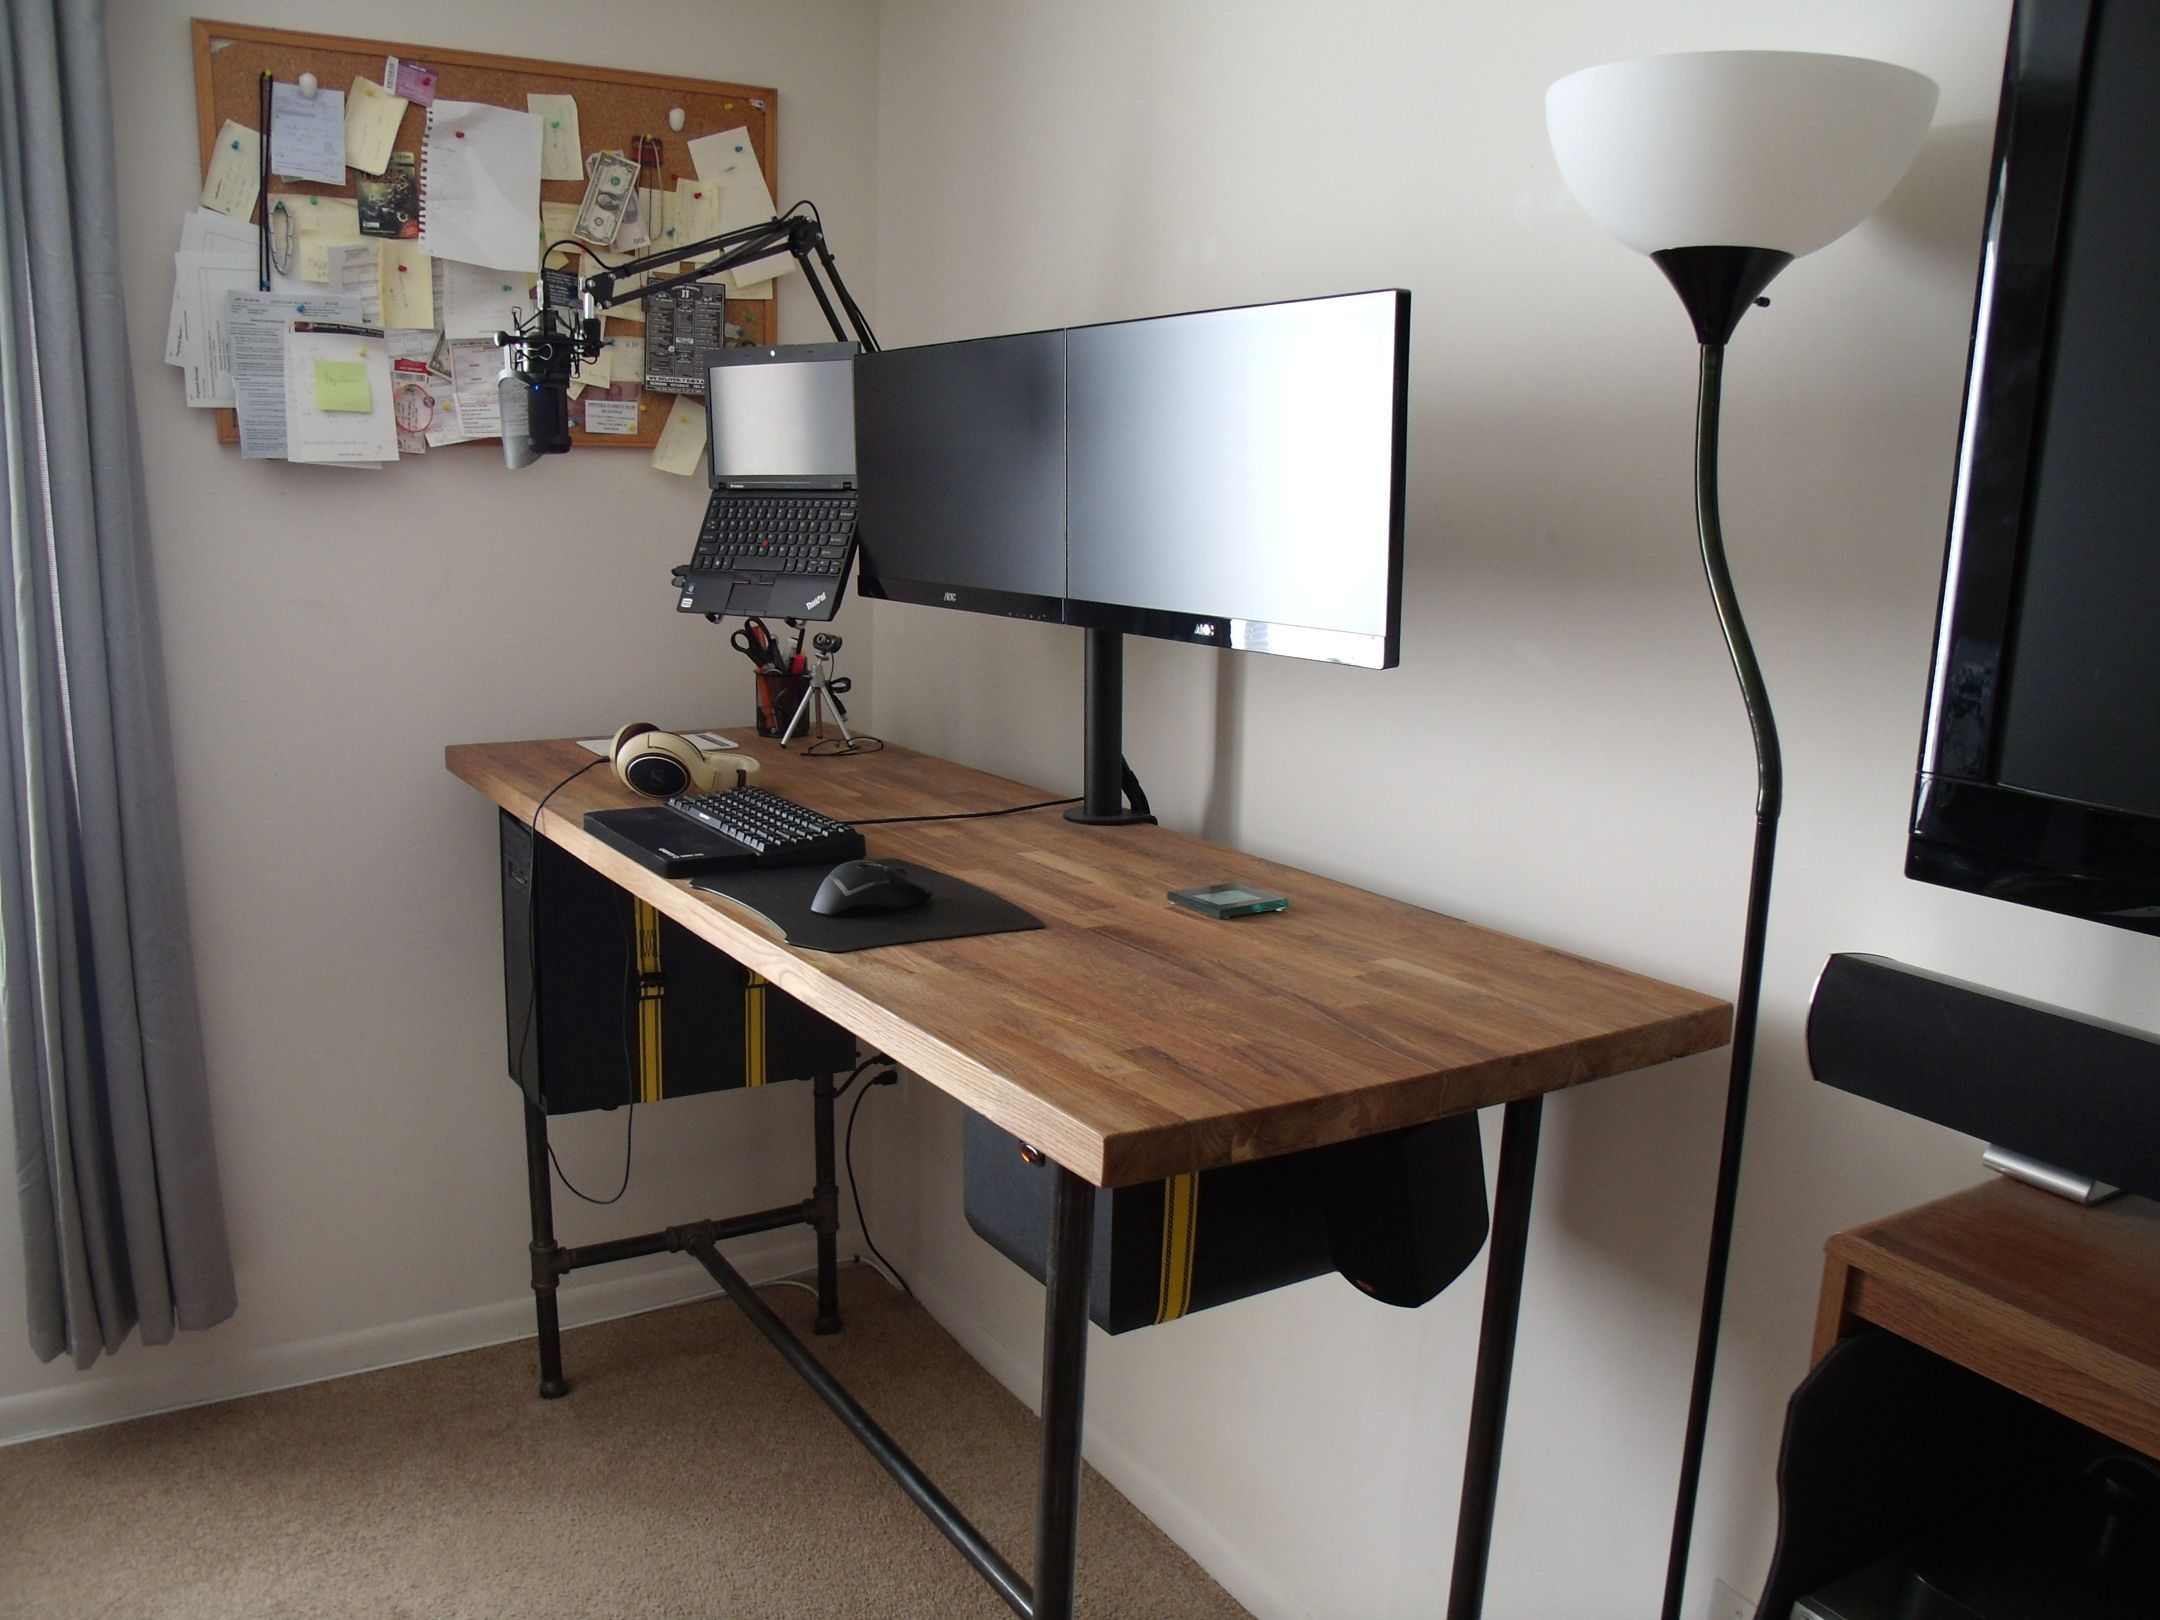 Diy ikea standing desk - Standing Battlestation